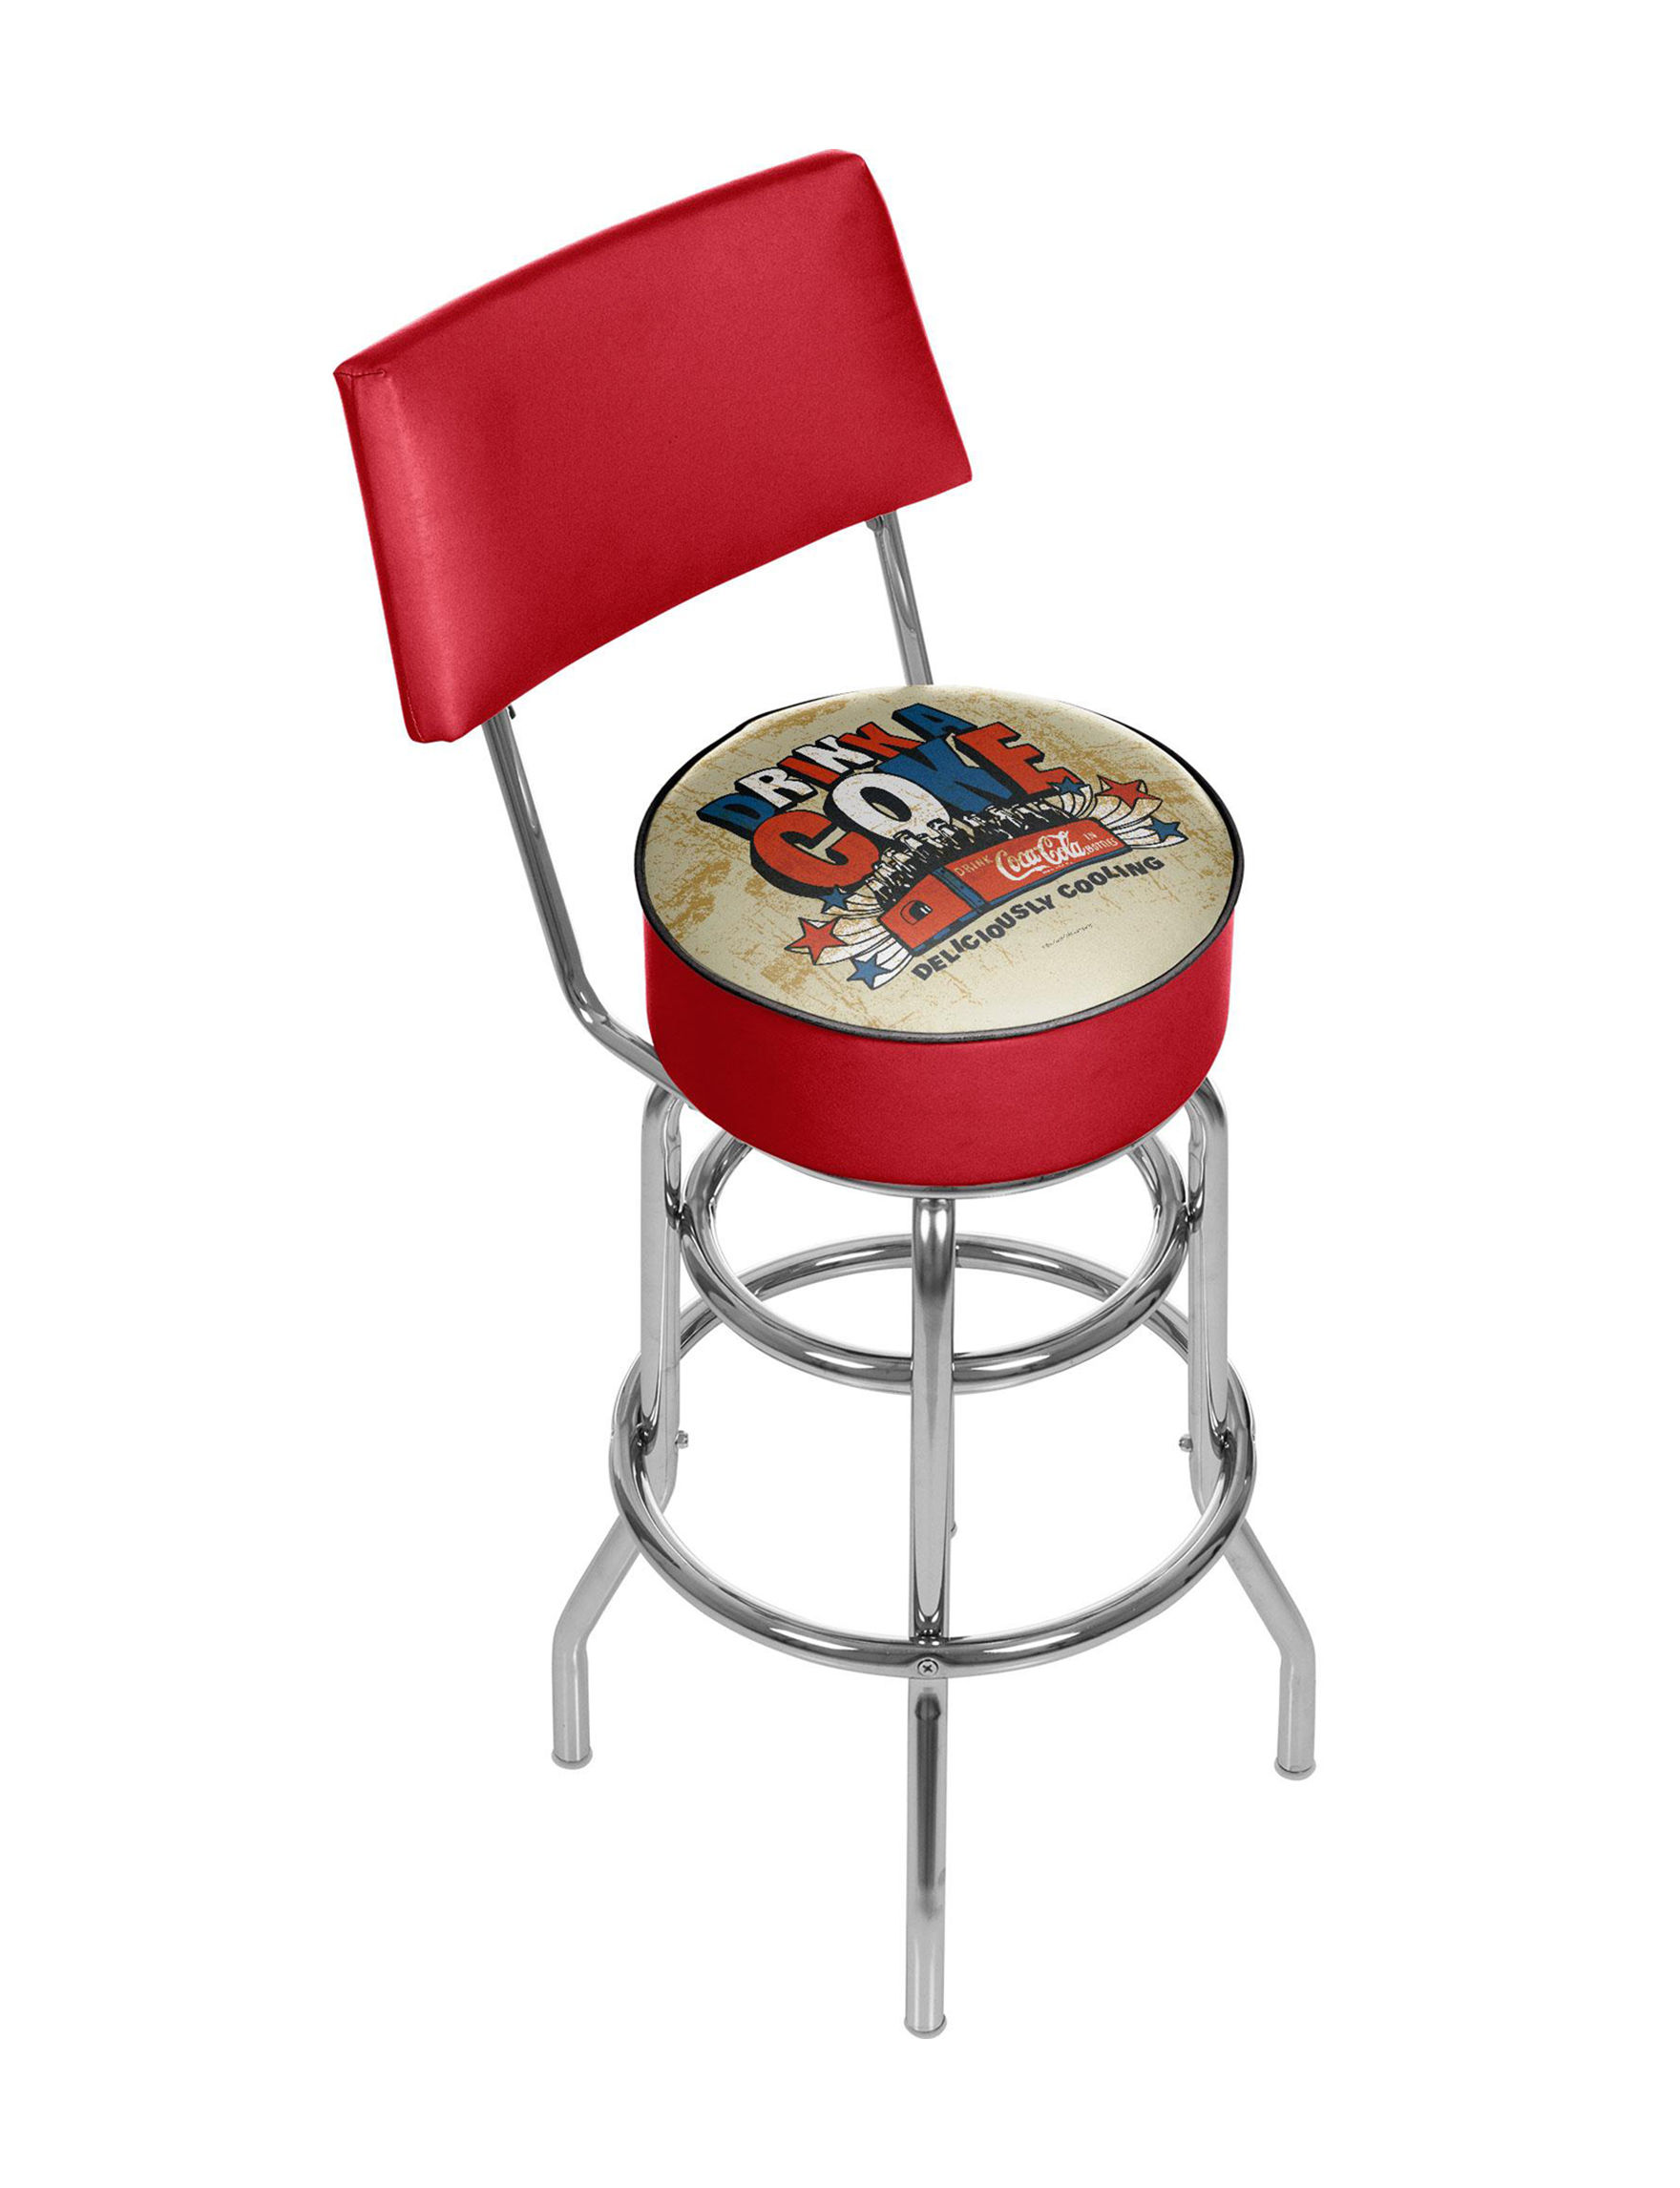 Coca Cola Red / White / Blue Bar & Kitchen Stools Kitchen & Dining Furniture